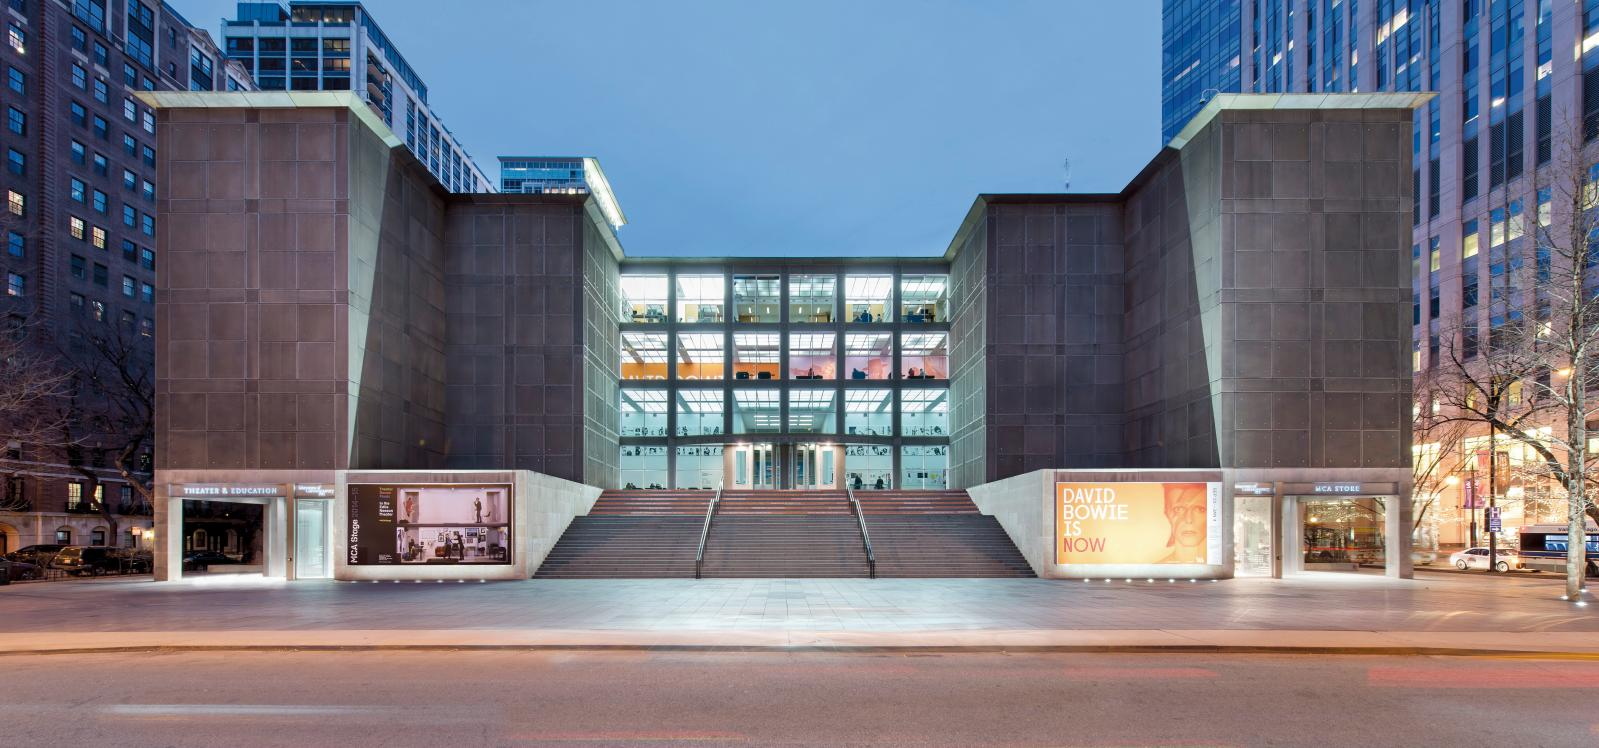 The façade of the Chicago Museum of Contemporary Art (MCA)